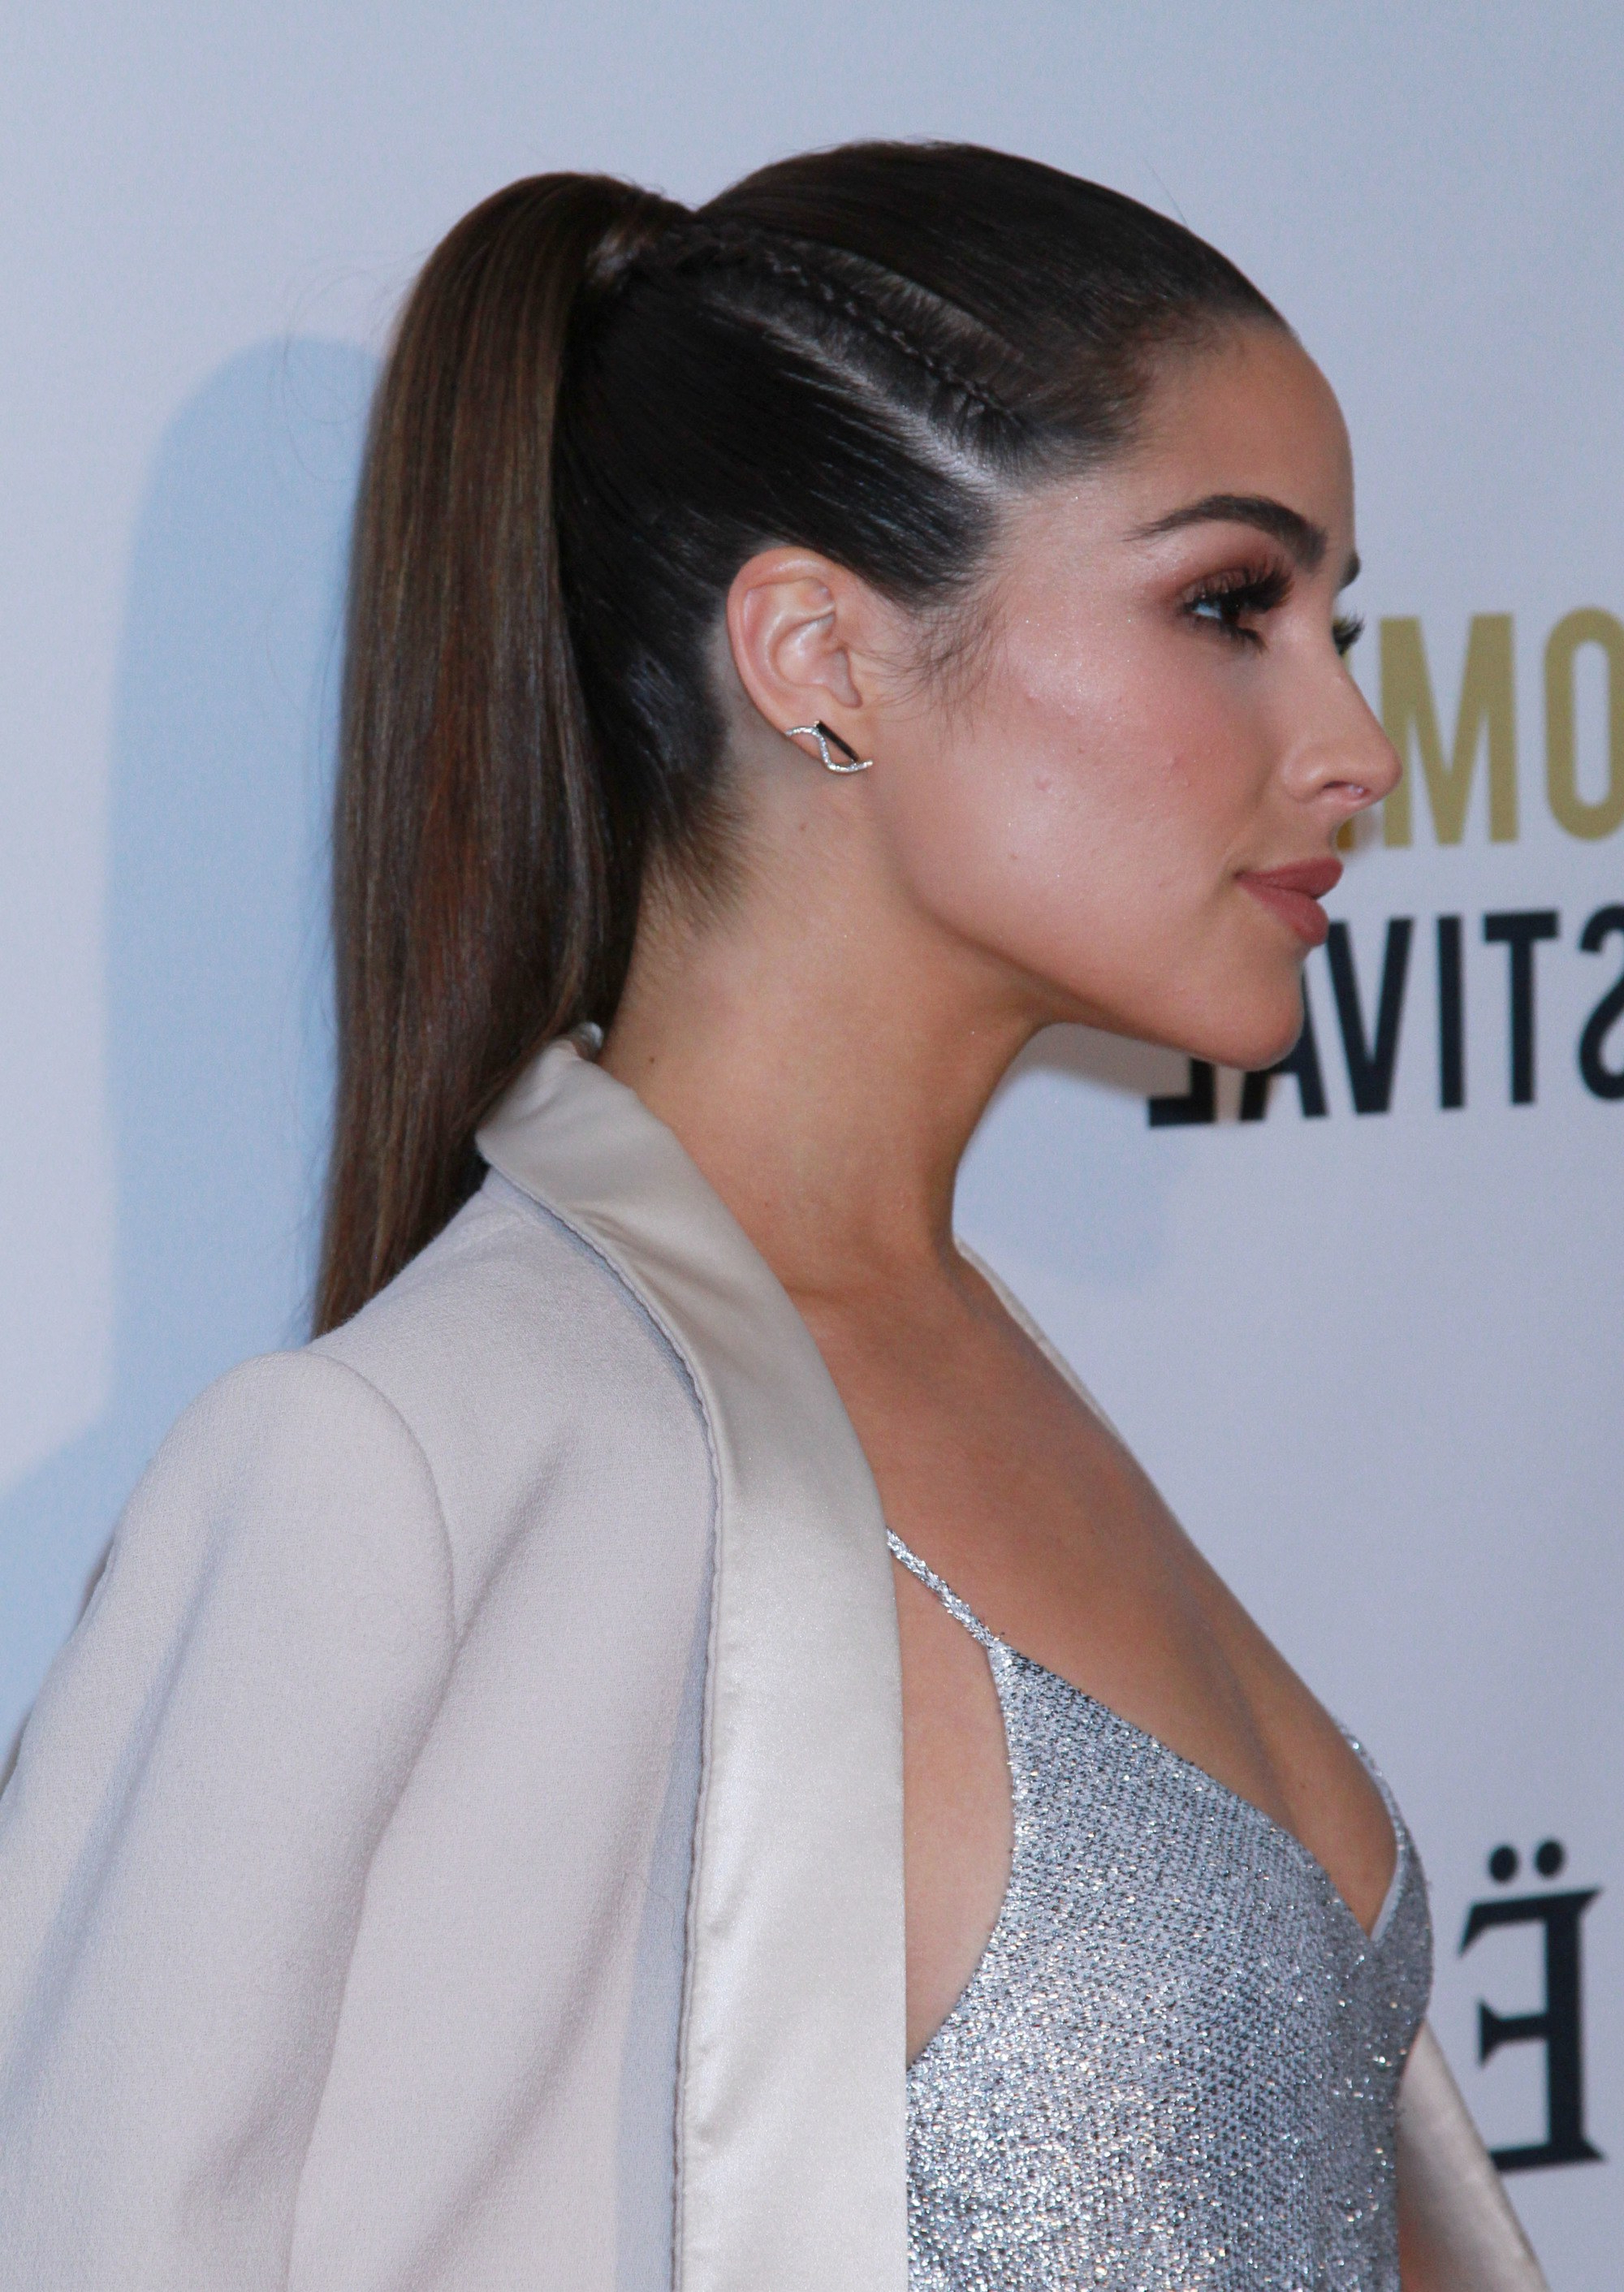 18 Side Braid Hairstyles To Inspire Your Next Look (2019 Update) With Widely Used High Ponytail Braided Hairstyles (View 18 of 20)